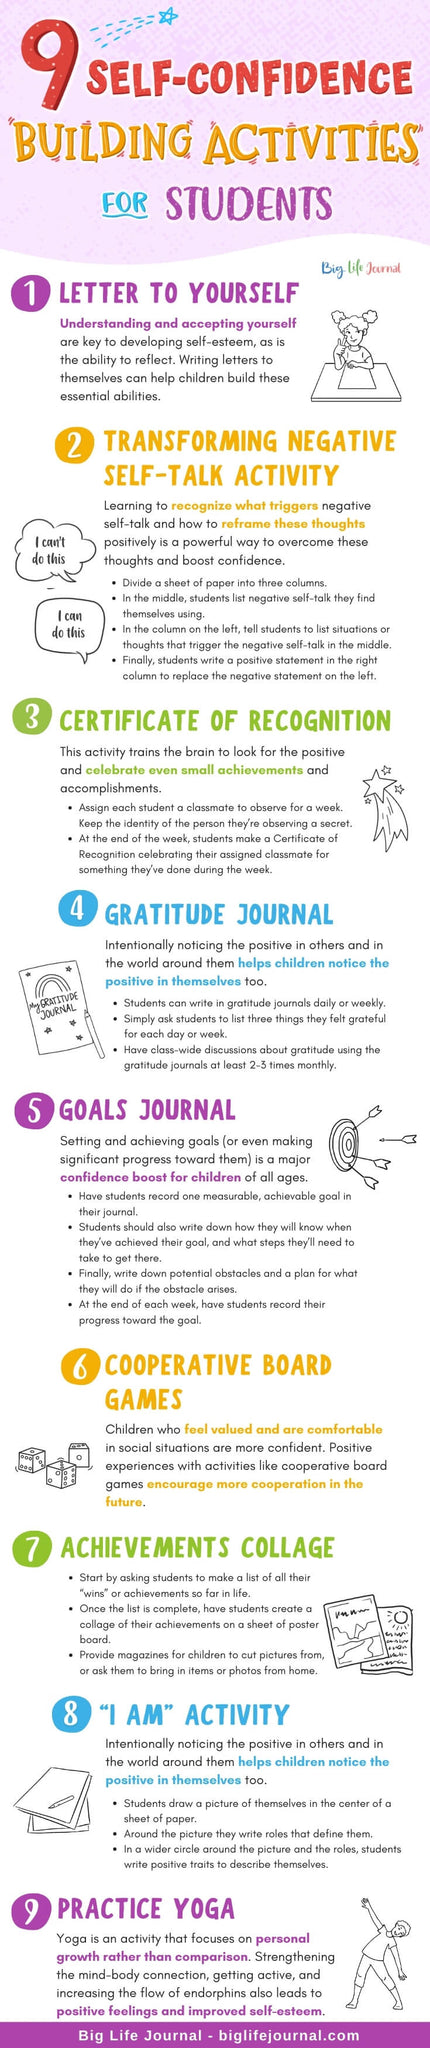 9 Self-Confidence Building Activities for Students